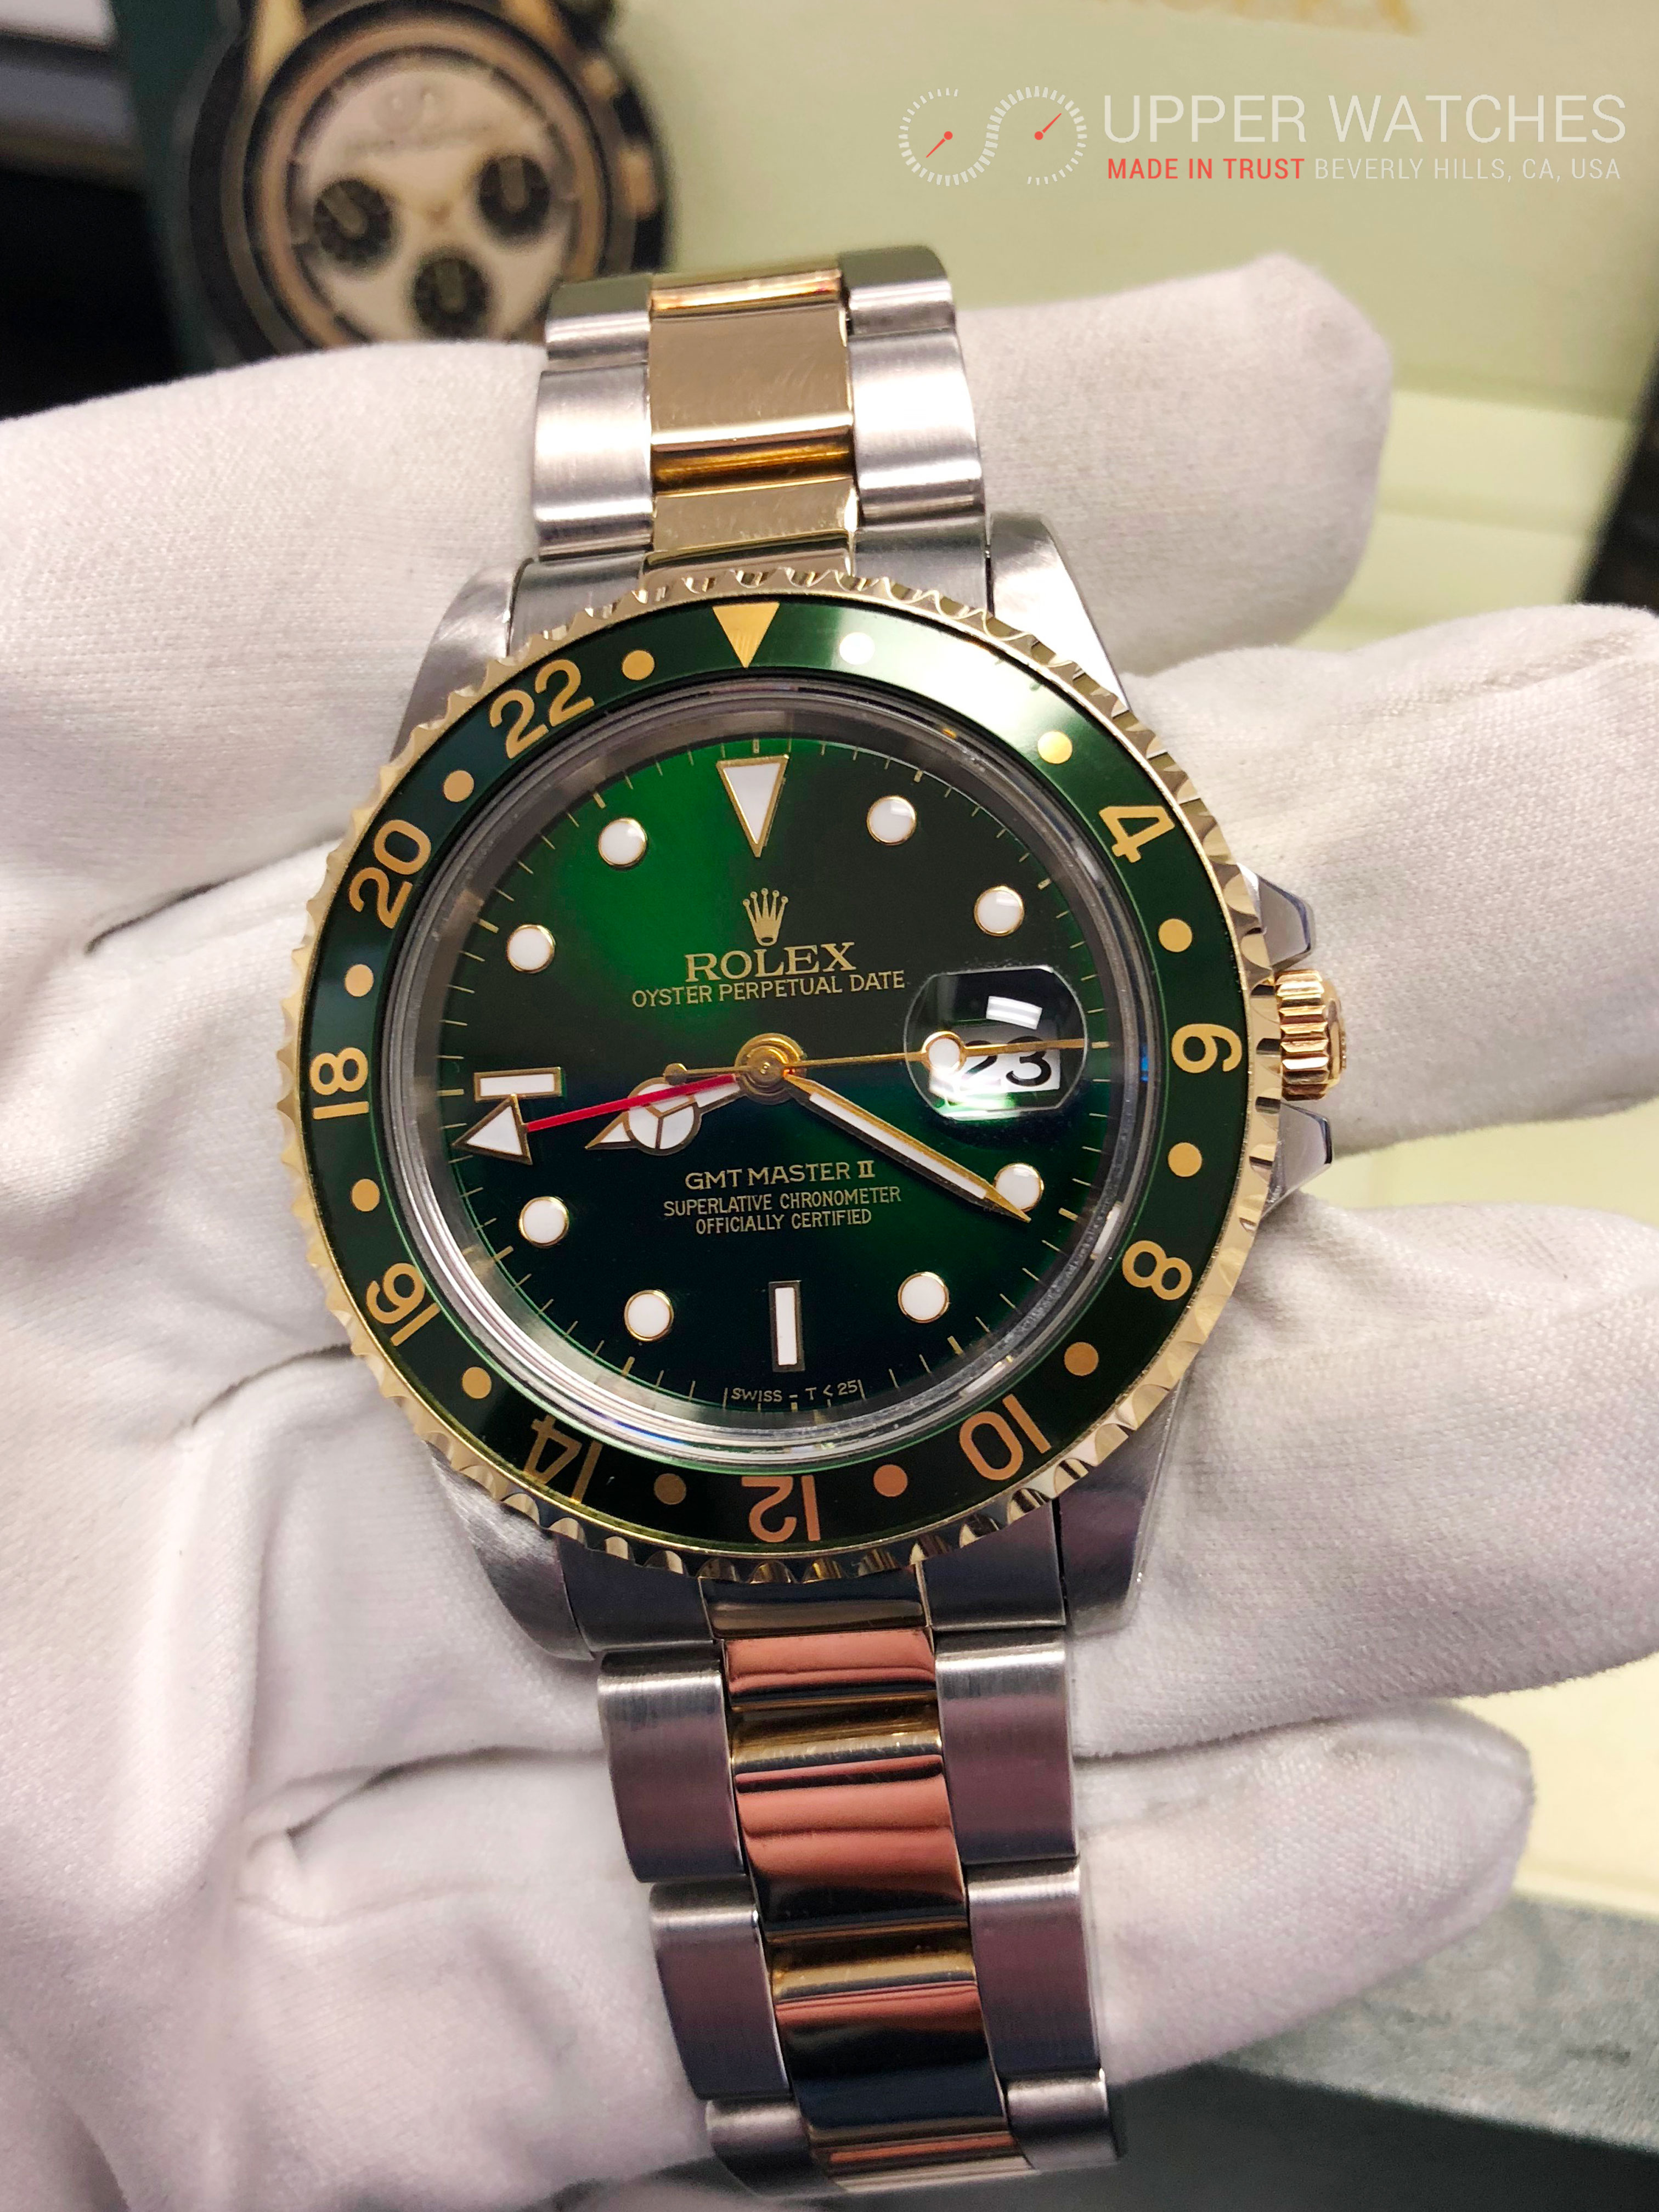 Rolex GMT MASTER II Gold & Stainless Steel 2 tones Green ...